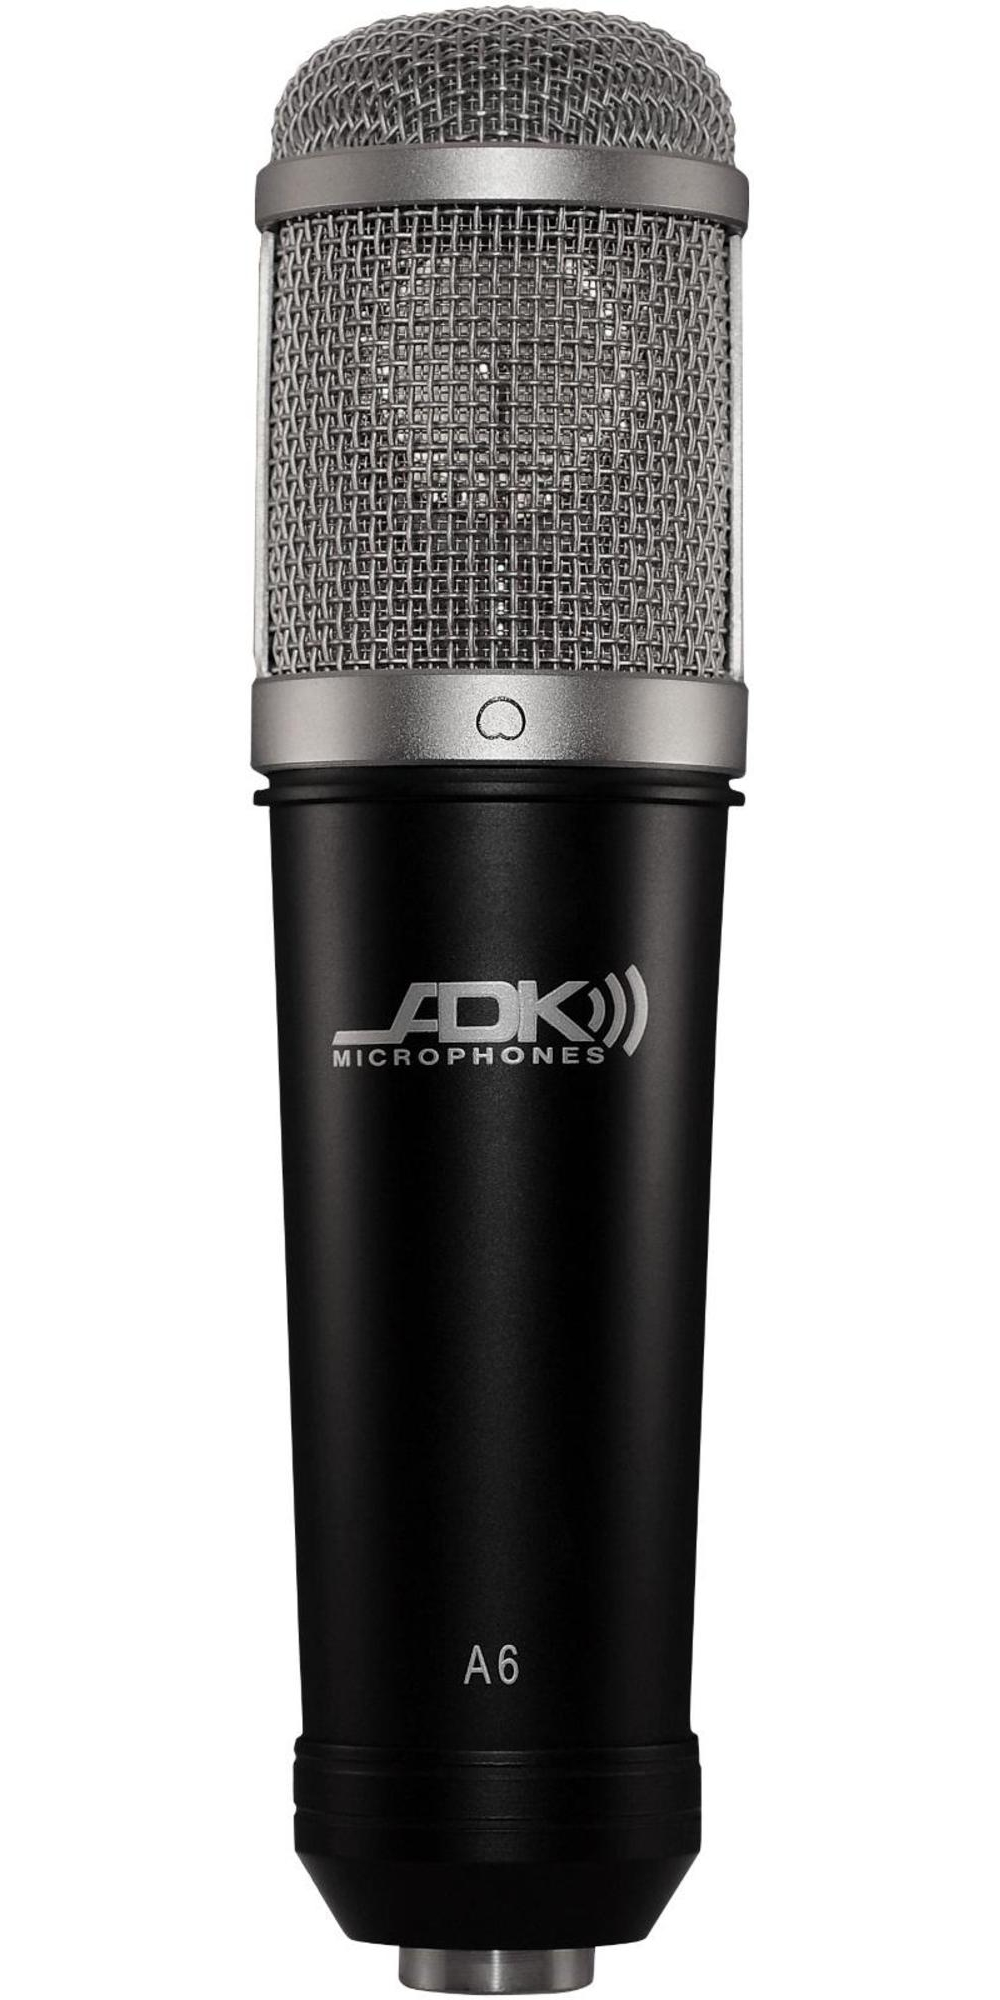 ADK Microphones A6 Cardioid Condenser Microphone by ADK Microphones